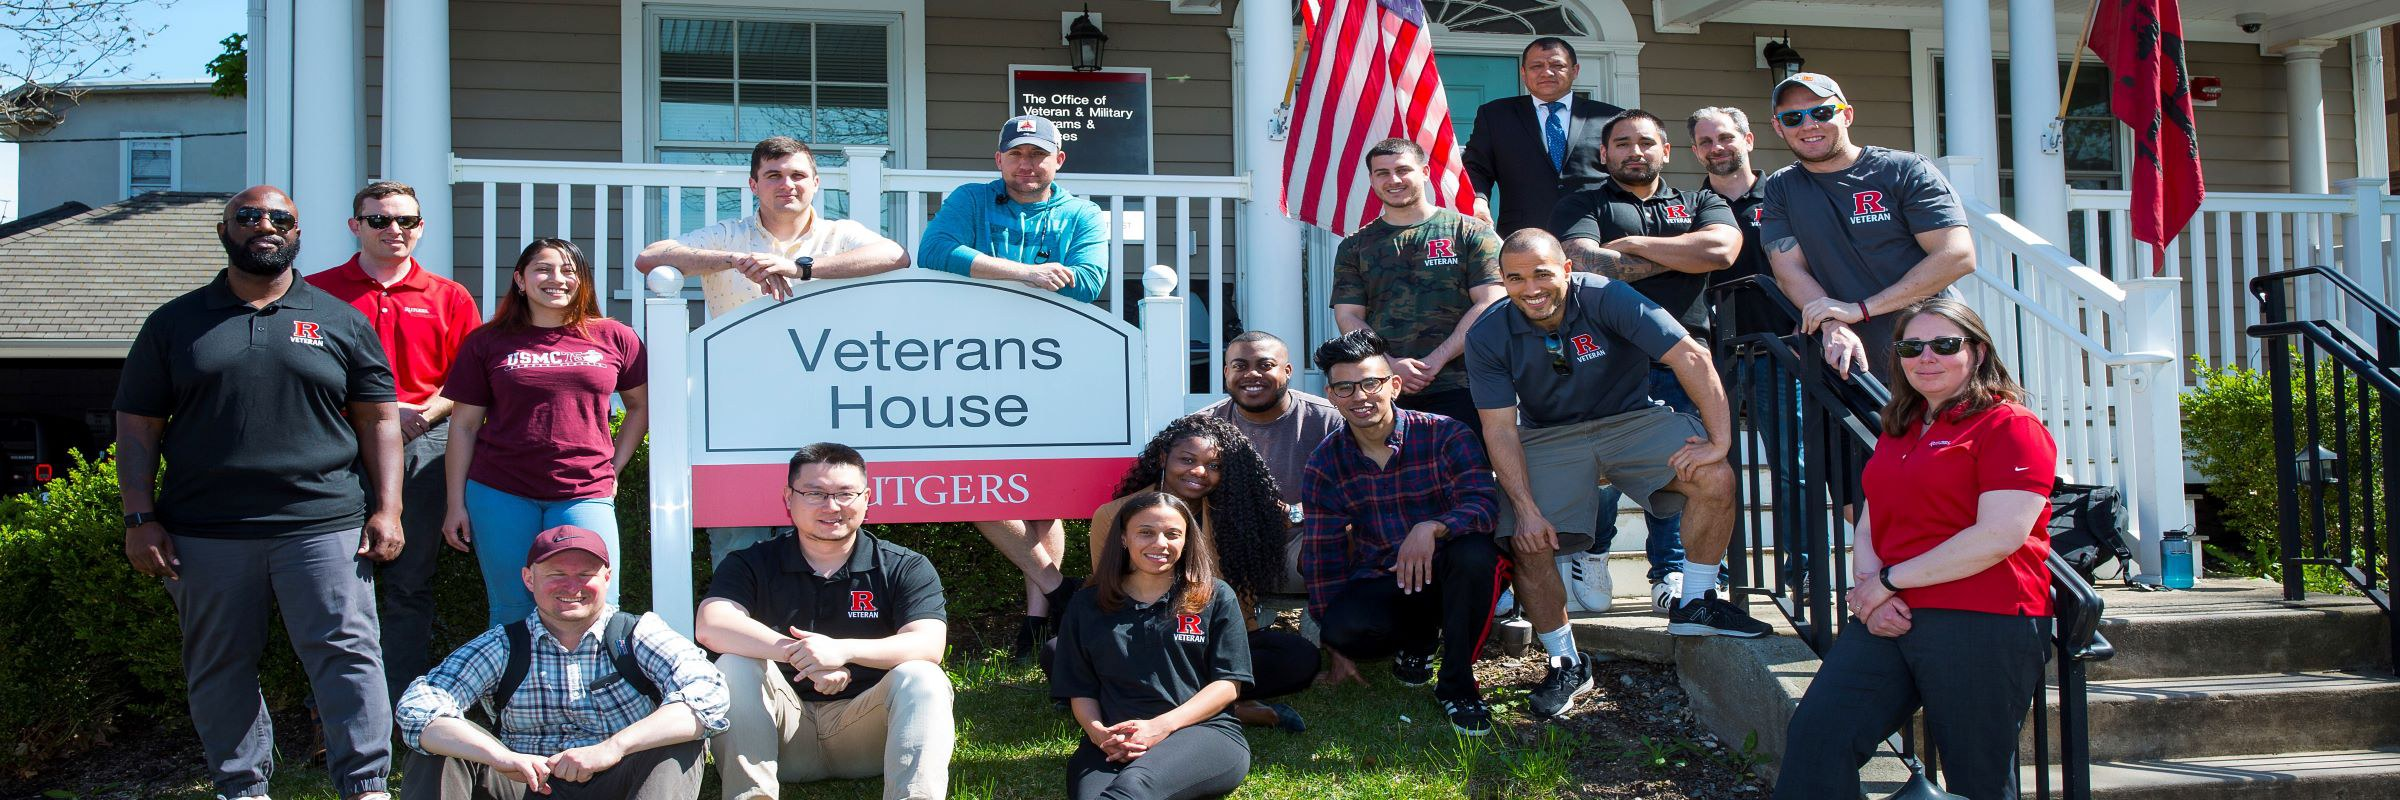 Photo of Students and Staff in front of Veterans House